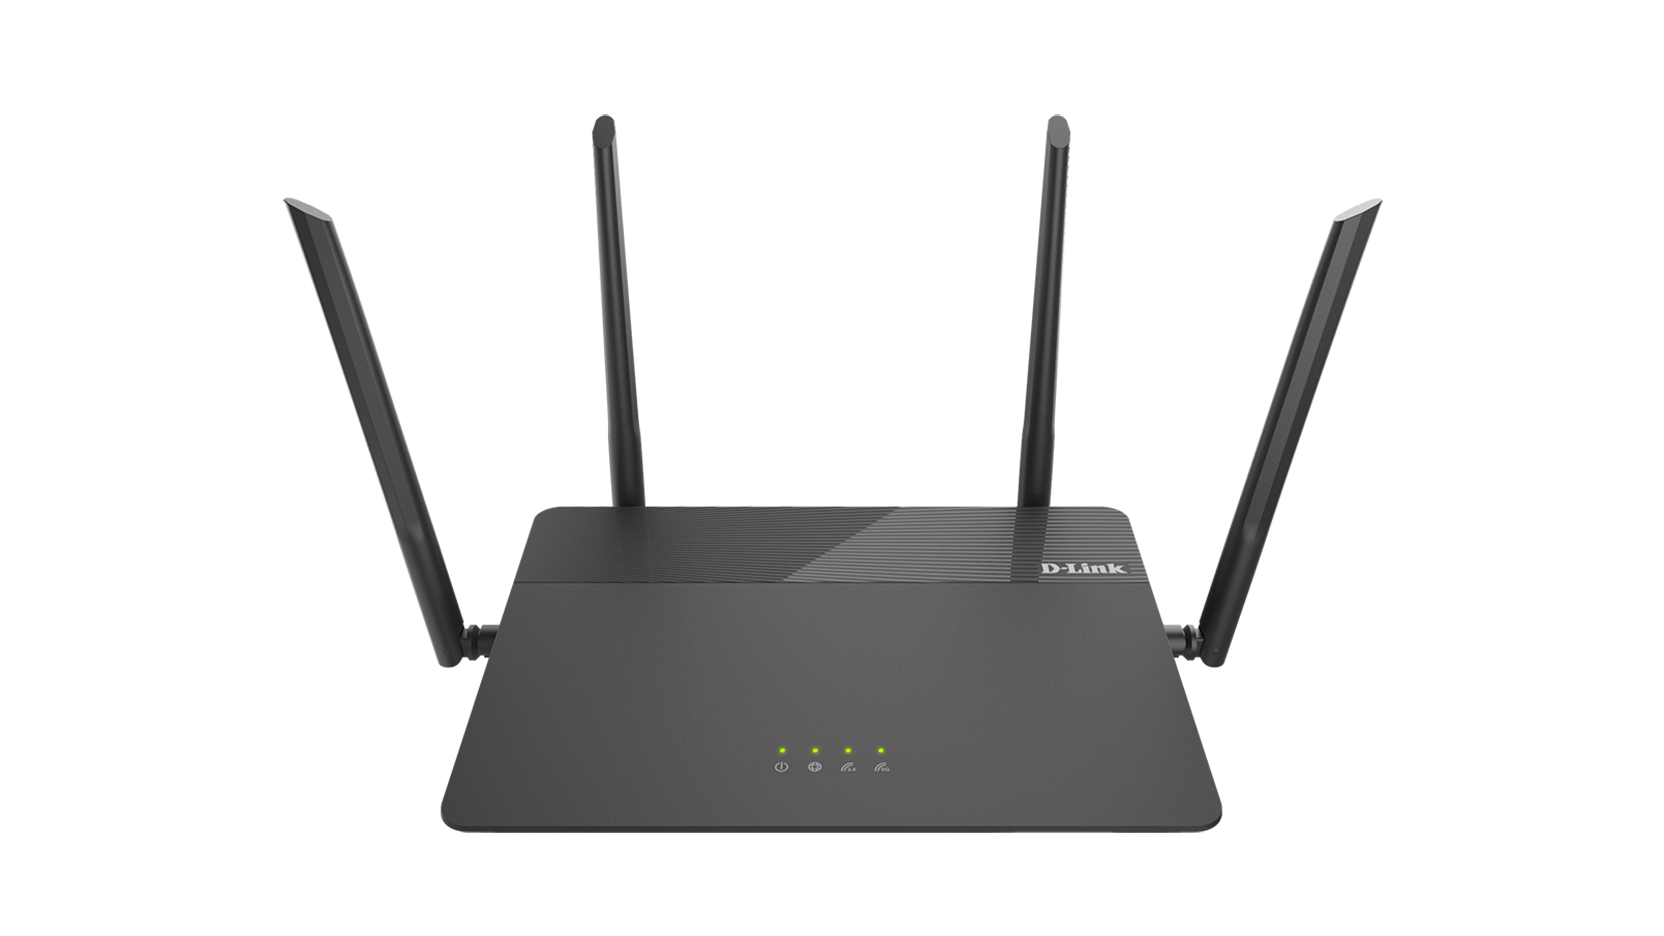 D-Link Wi-Fi DIR-878 MU-MIMO AC1900 Router